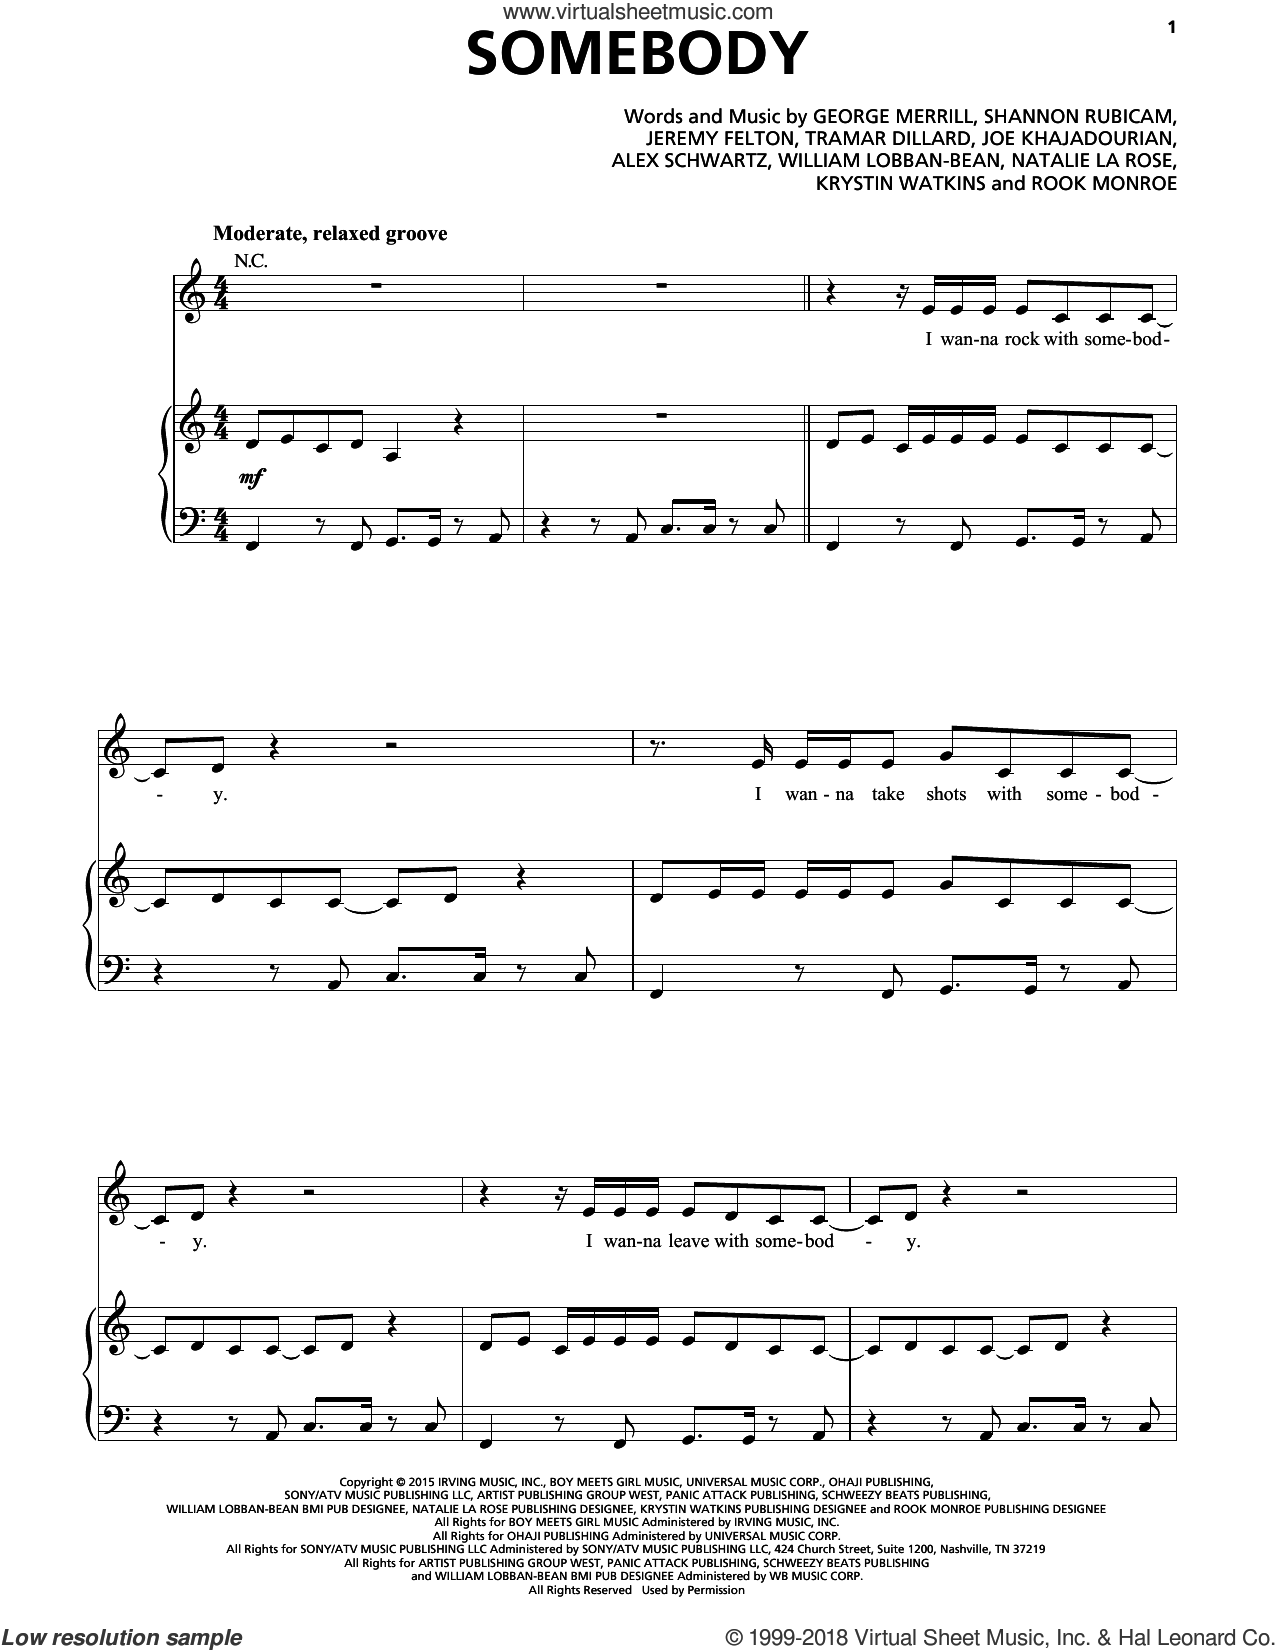 Somebody sheet music for voice, piano or guitar by Natalie La Rose feat. Jeremih, Alex Schwartz, Jeremih Felton, Joe Khajadourian, Krystin Watkins, Natalie La Rose, Tramar Dillard and William Lobban-Bean, intermediate. Score Image Preview.